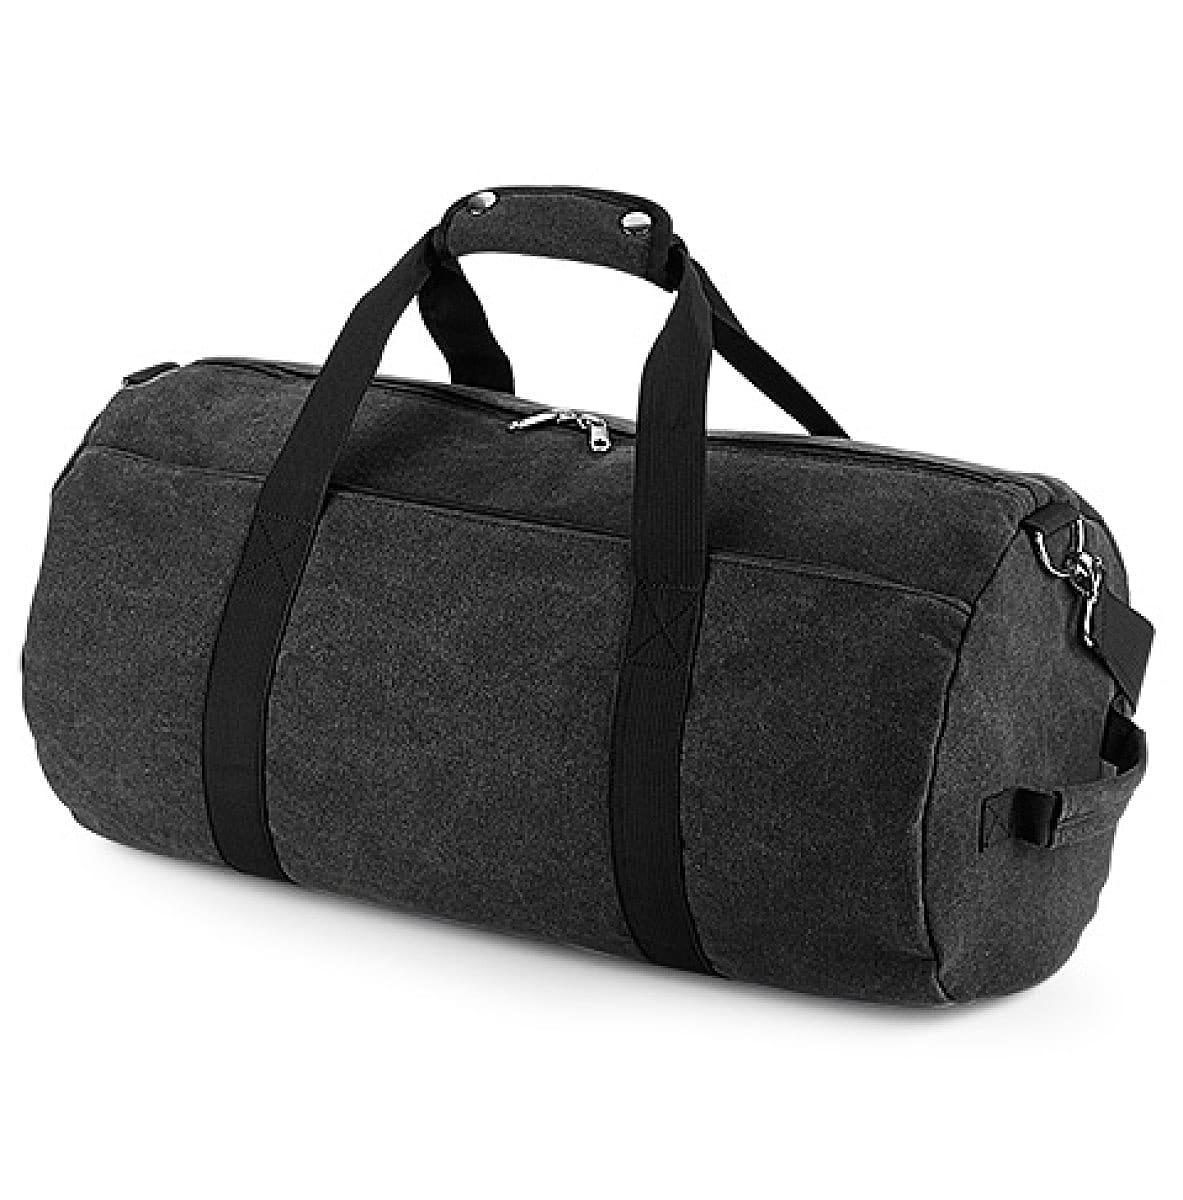 Bagbase Vintage Canval Barrel Bag in Vintage Black (Product Code: BG655)